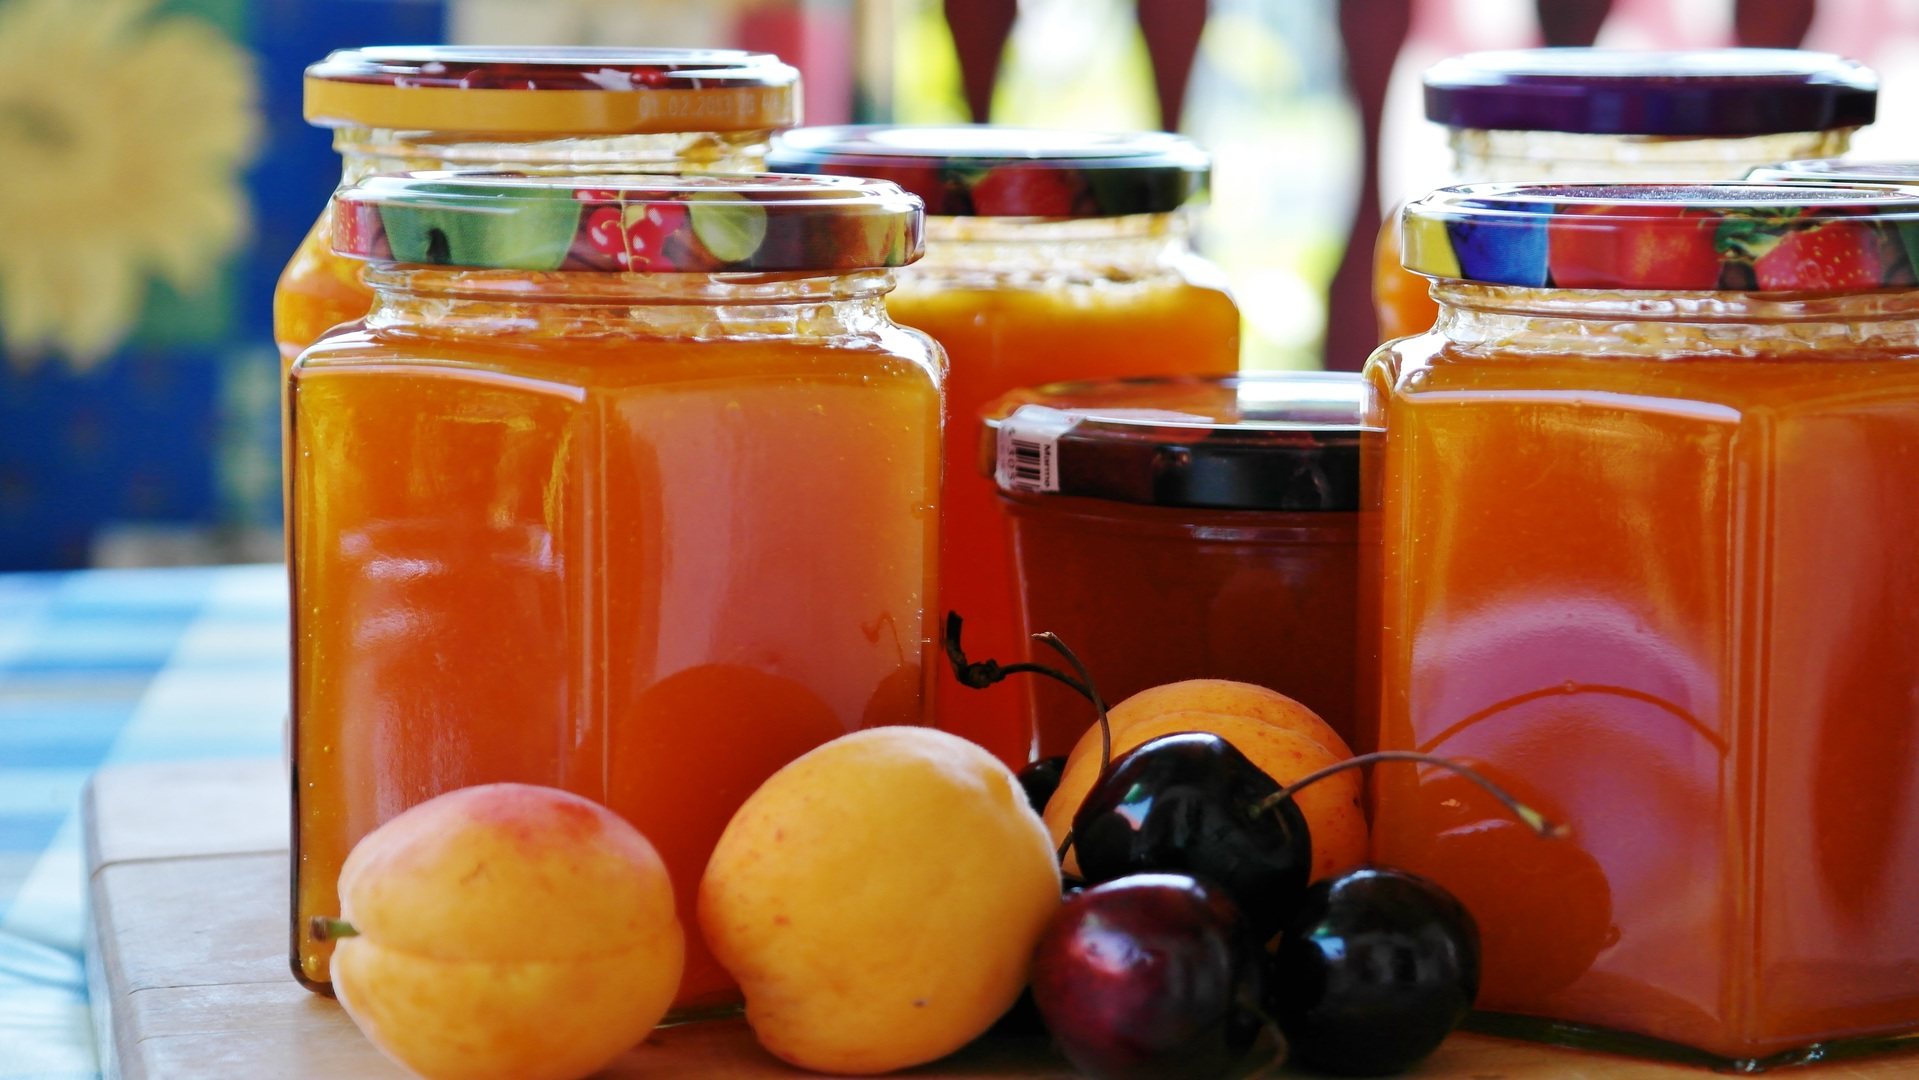 Jams and Juices Buy While Shopping In Pelling